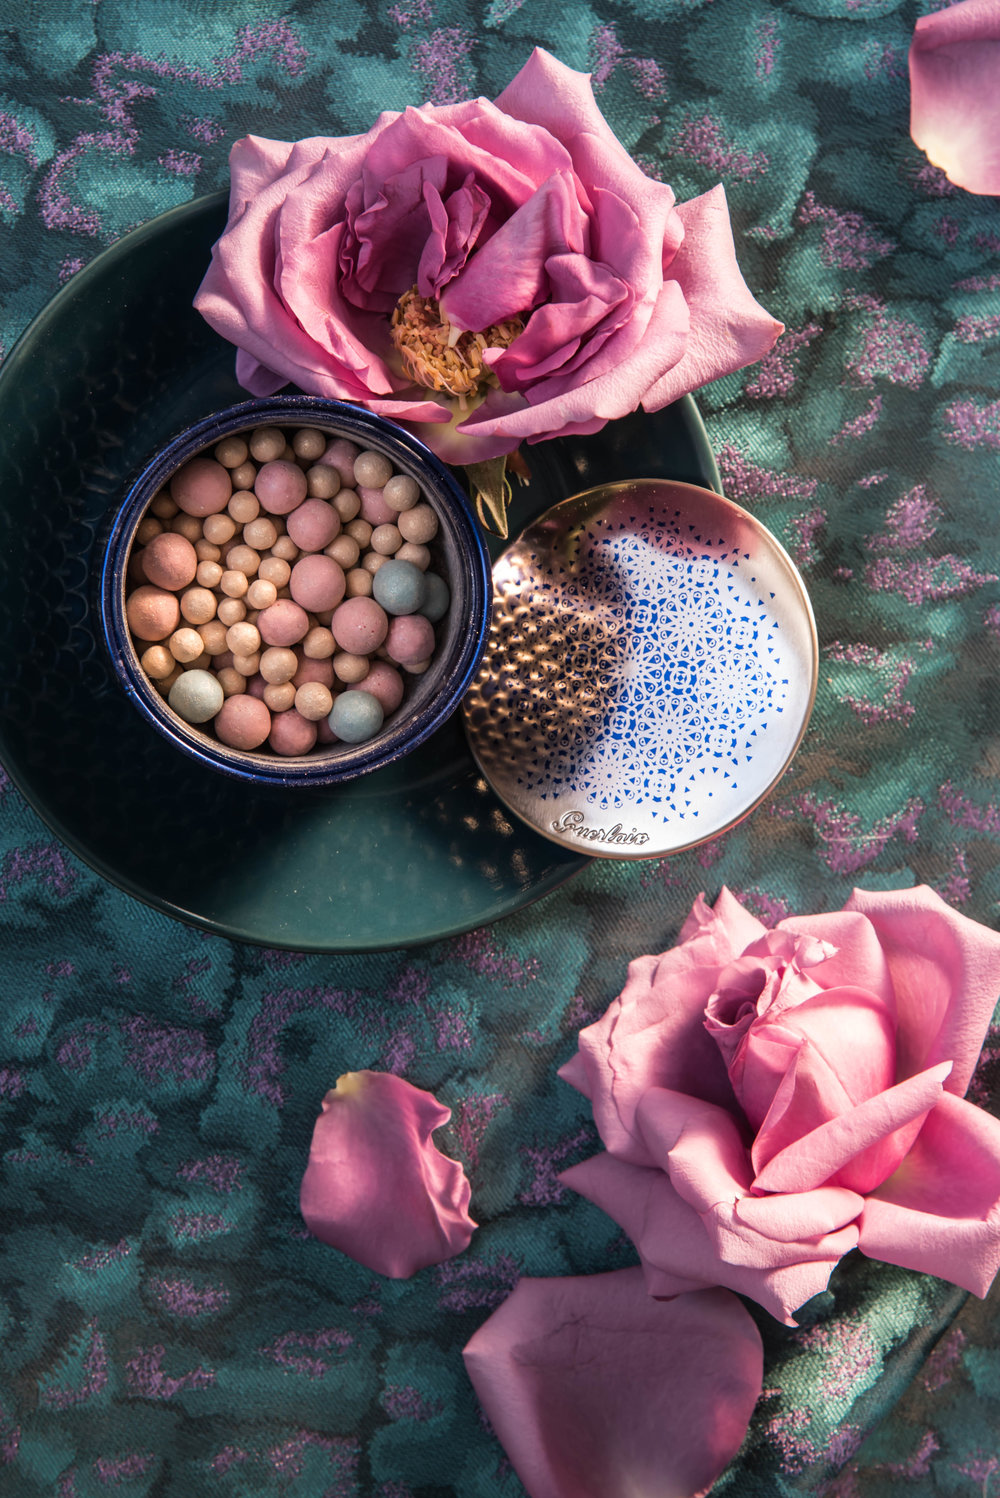 ROSE & IVY Journal Gift Guide The Mood Dark Florals Guerlain Meterites Illuminating Powder Pearls